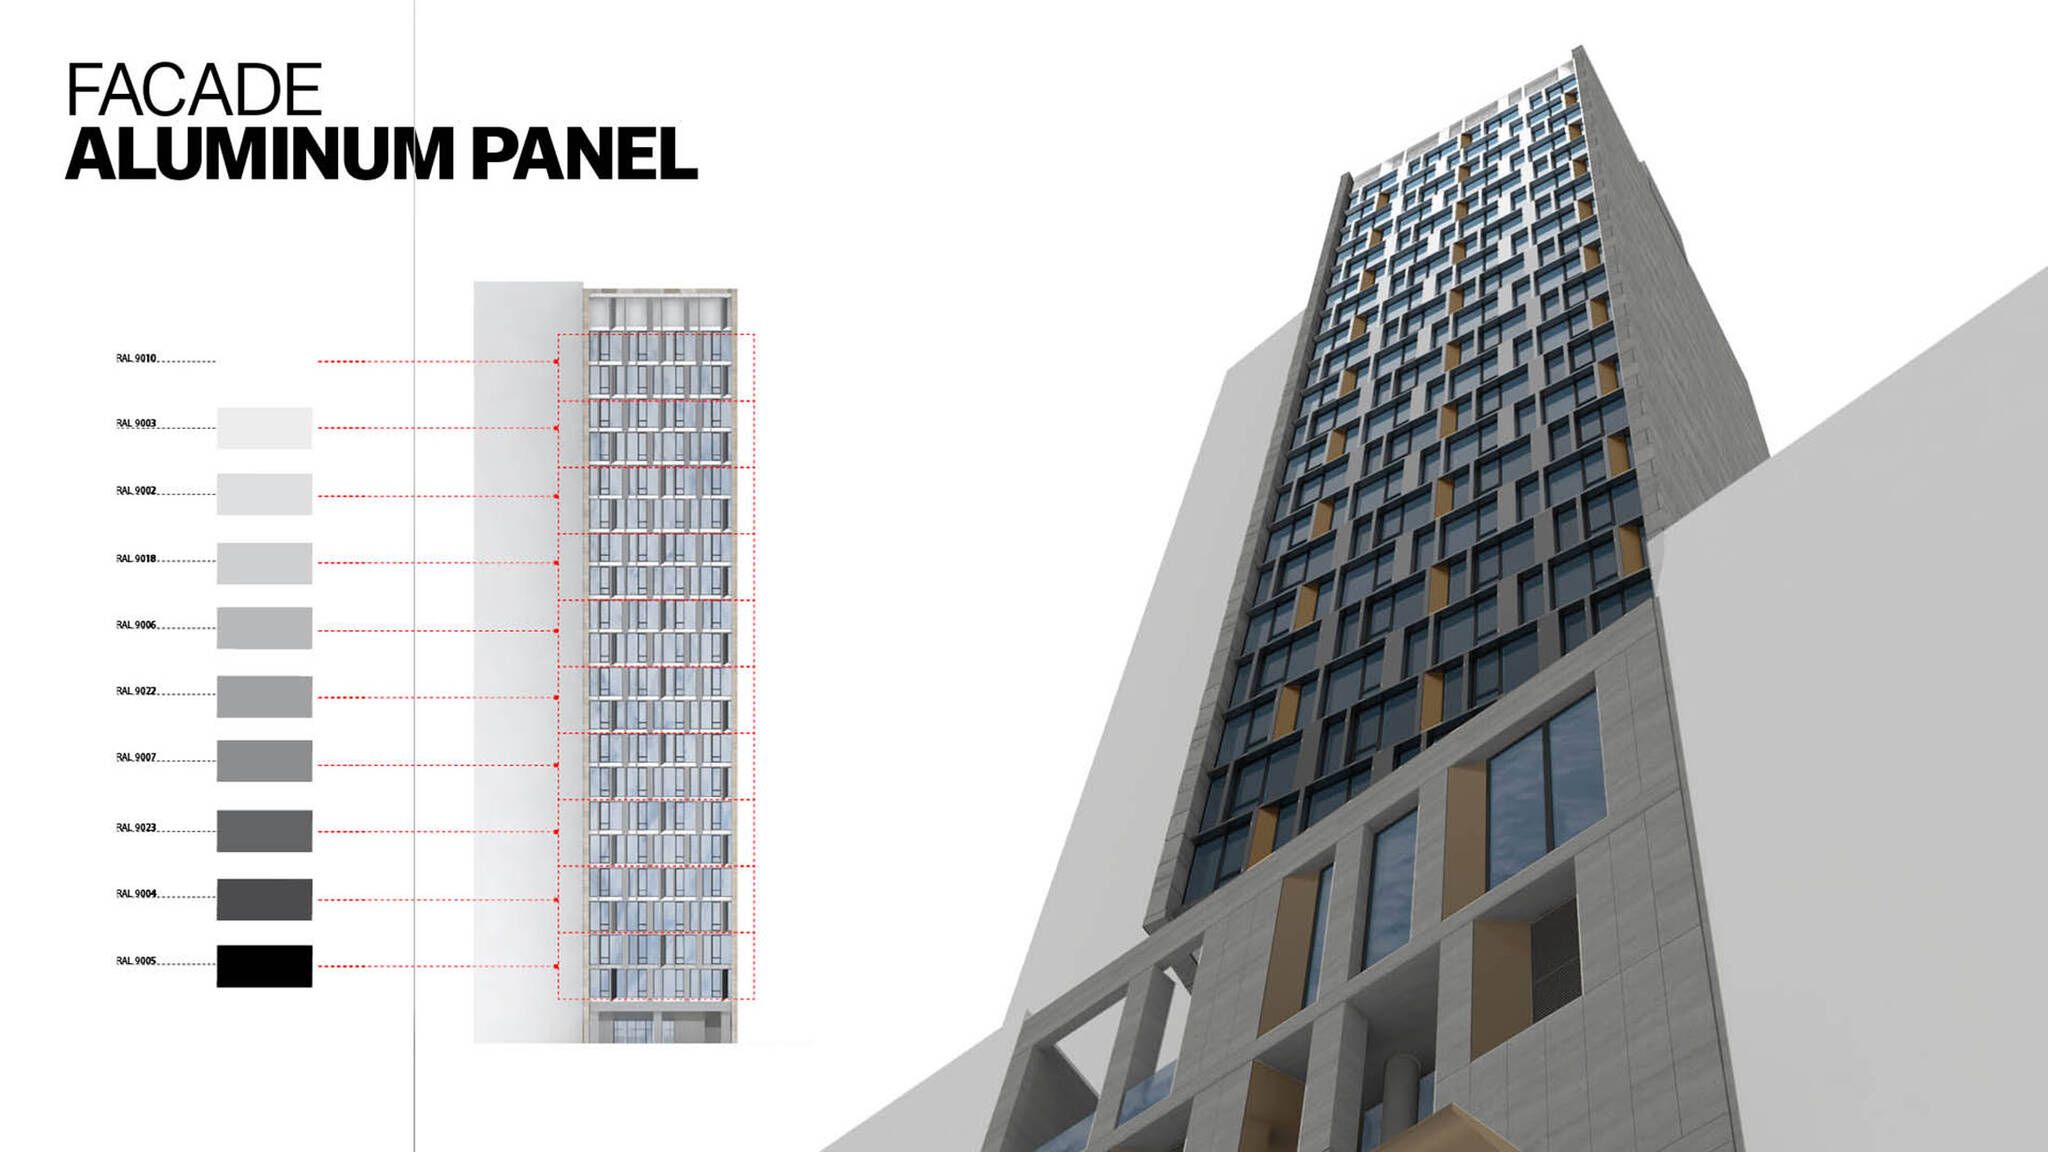 Aluminum panel facade of the Modular AC Hotel project located at 842 Sixth Avenue in NoMad, New York City designed by the architecture studio Danny Forster & Architecture